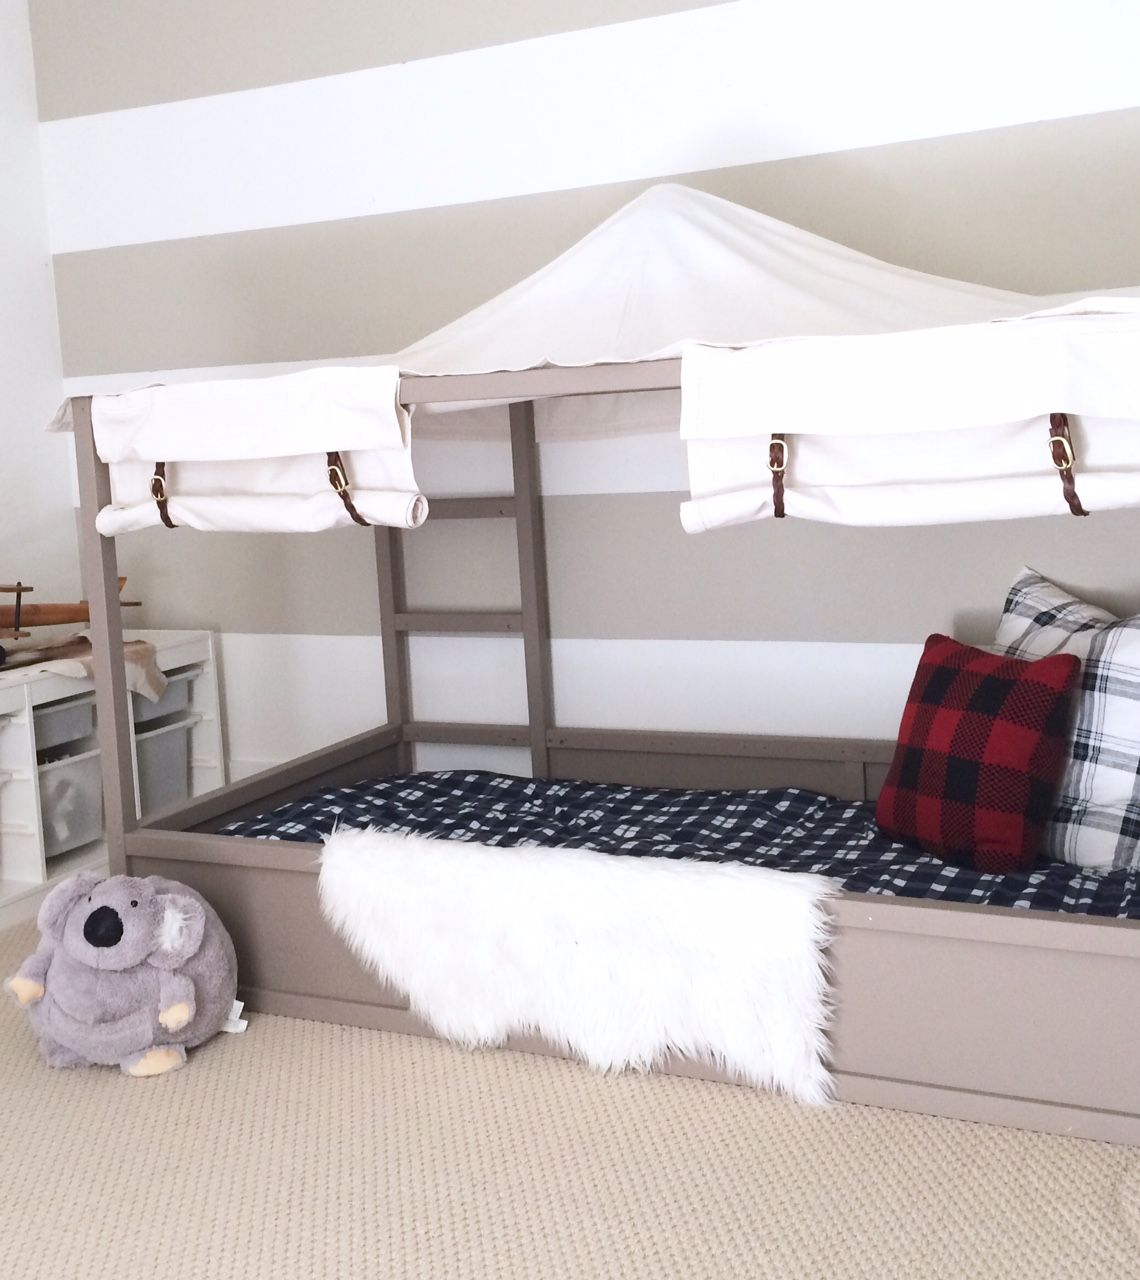 Harlow Thistle Home Design Lifestyle Diy Ikea Kura Bed Hack Diy Boy Canopy Bed Ikea Kura Bed Boys Bed Canopy Kura Bed